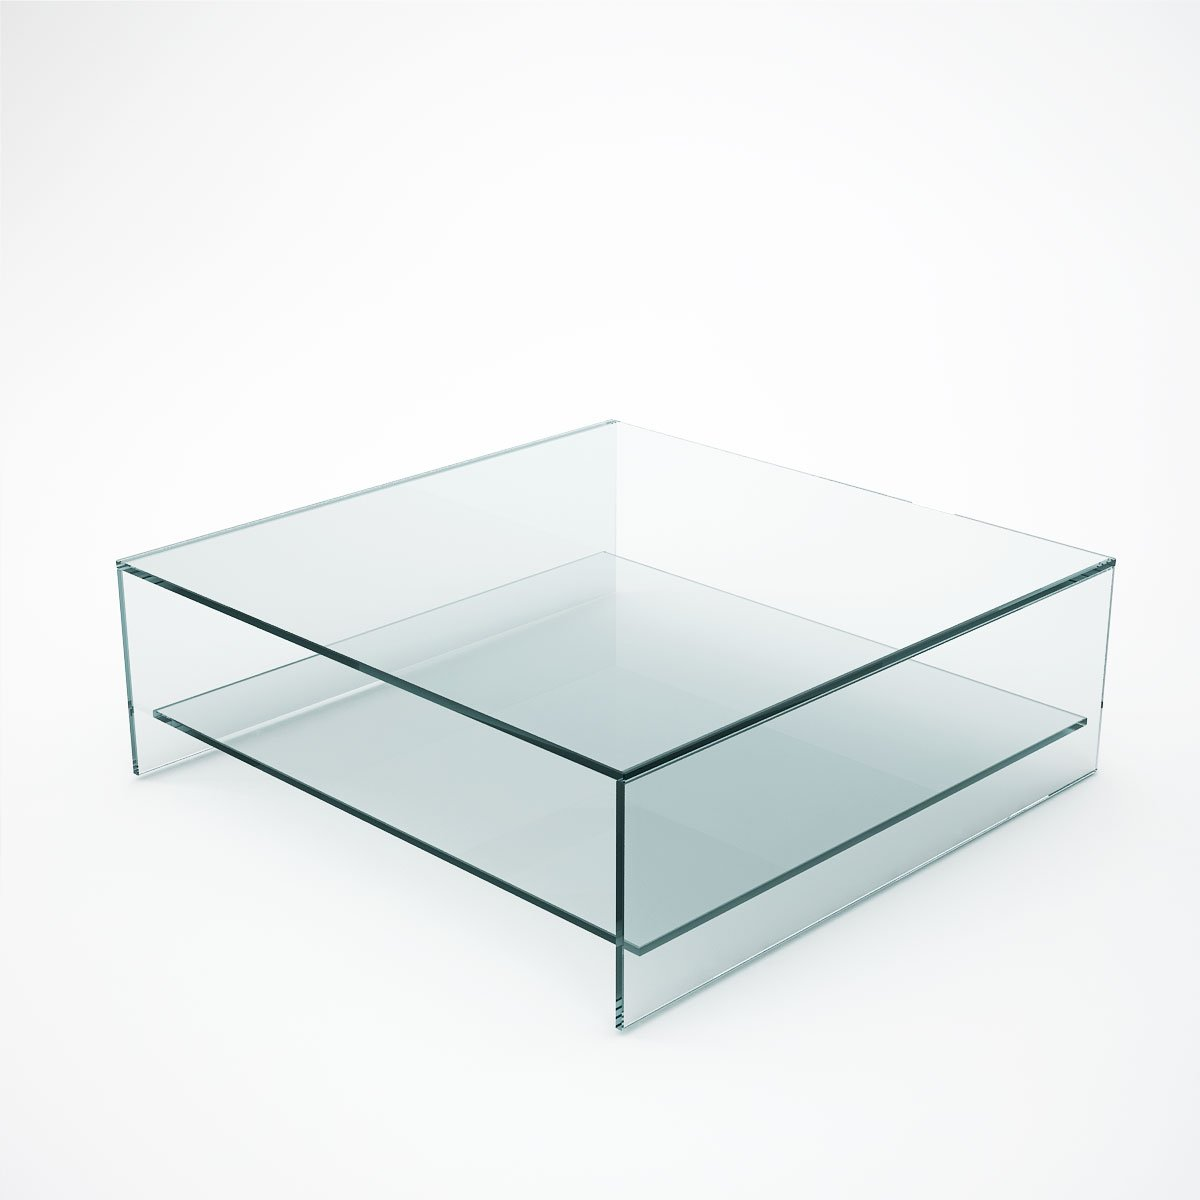 Glass Coffe Table Judd Square Glass Coffee Table With Shelf Klarity